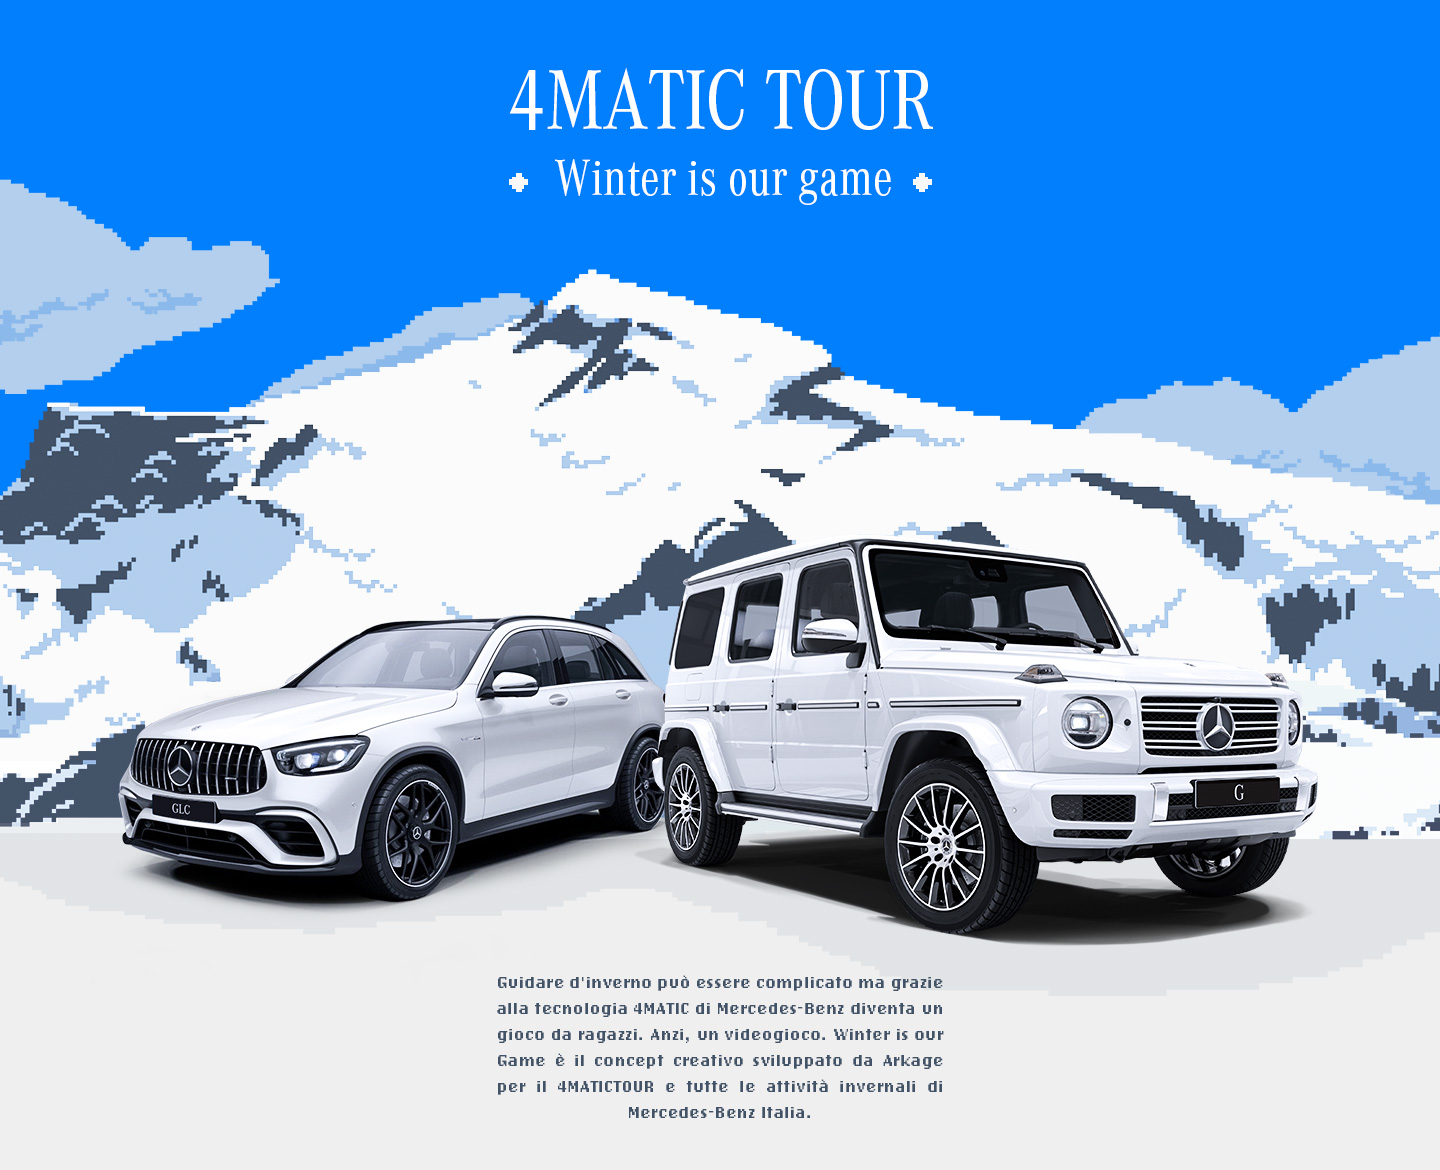 4Matic Tour